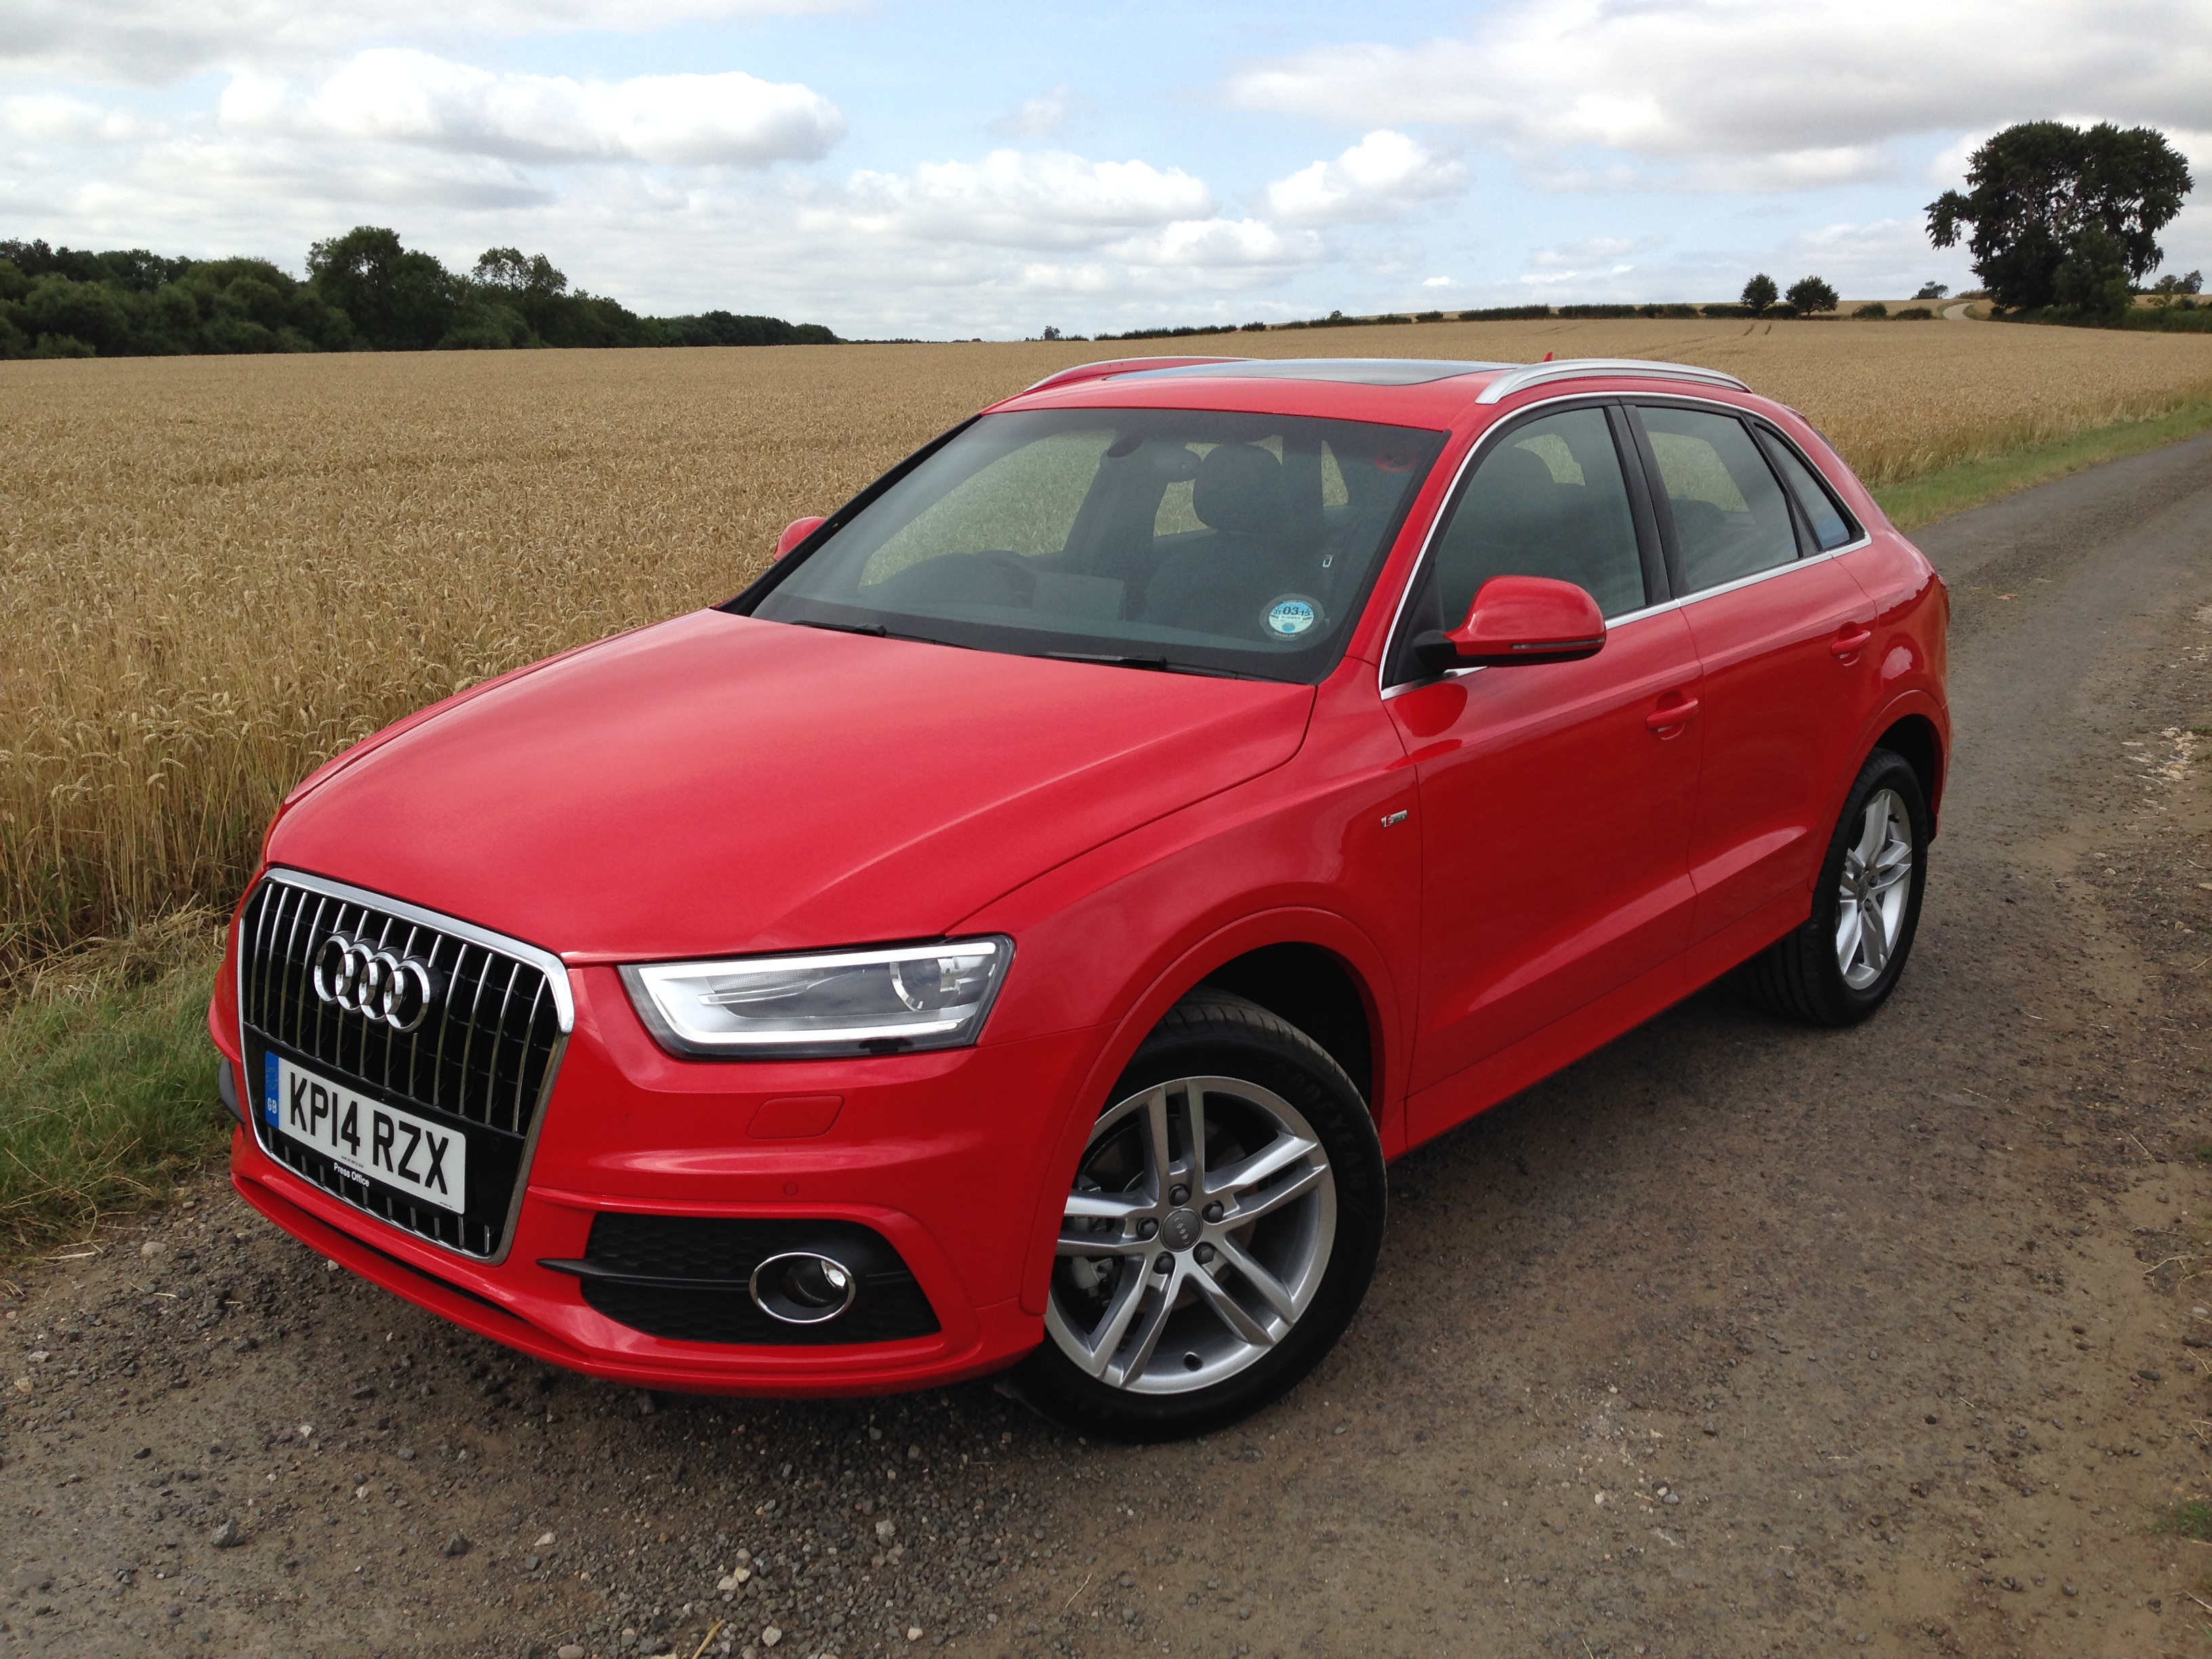 Audi, Q3, 1.4 TFSI, parked, fiield